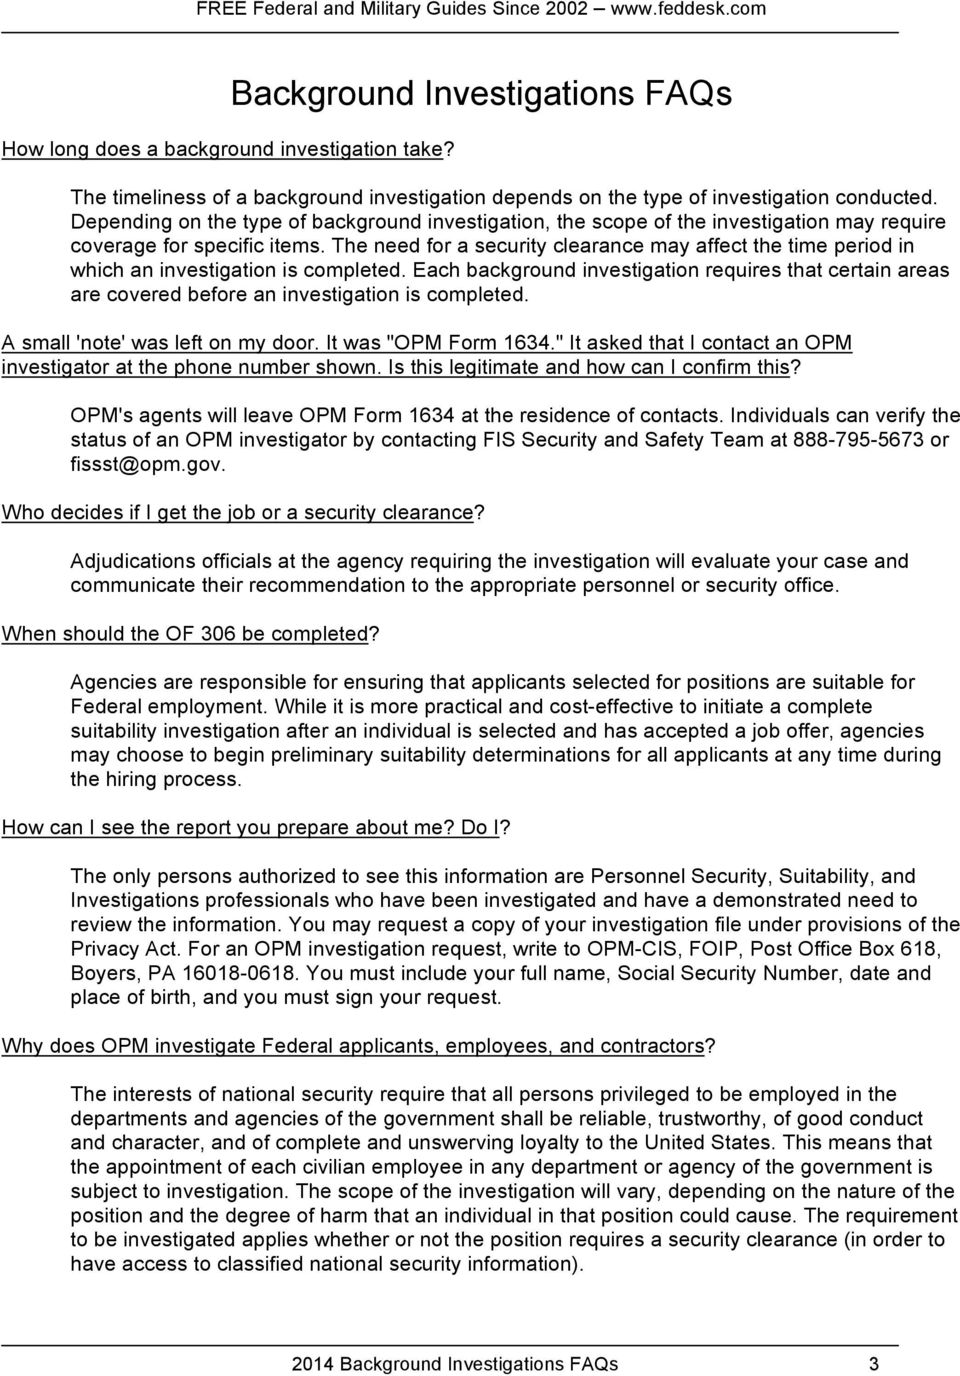 2014 Background Investigations FAQs - PDF